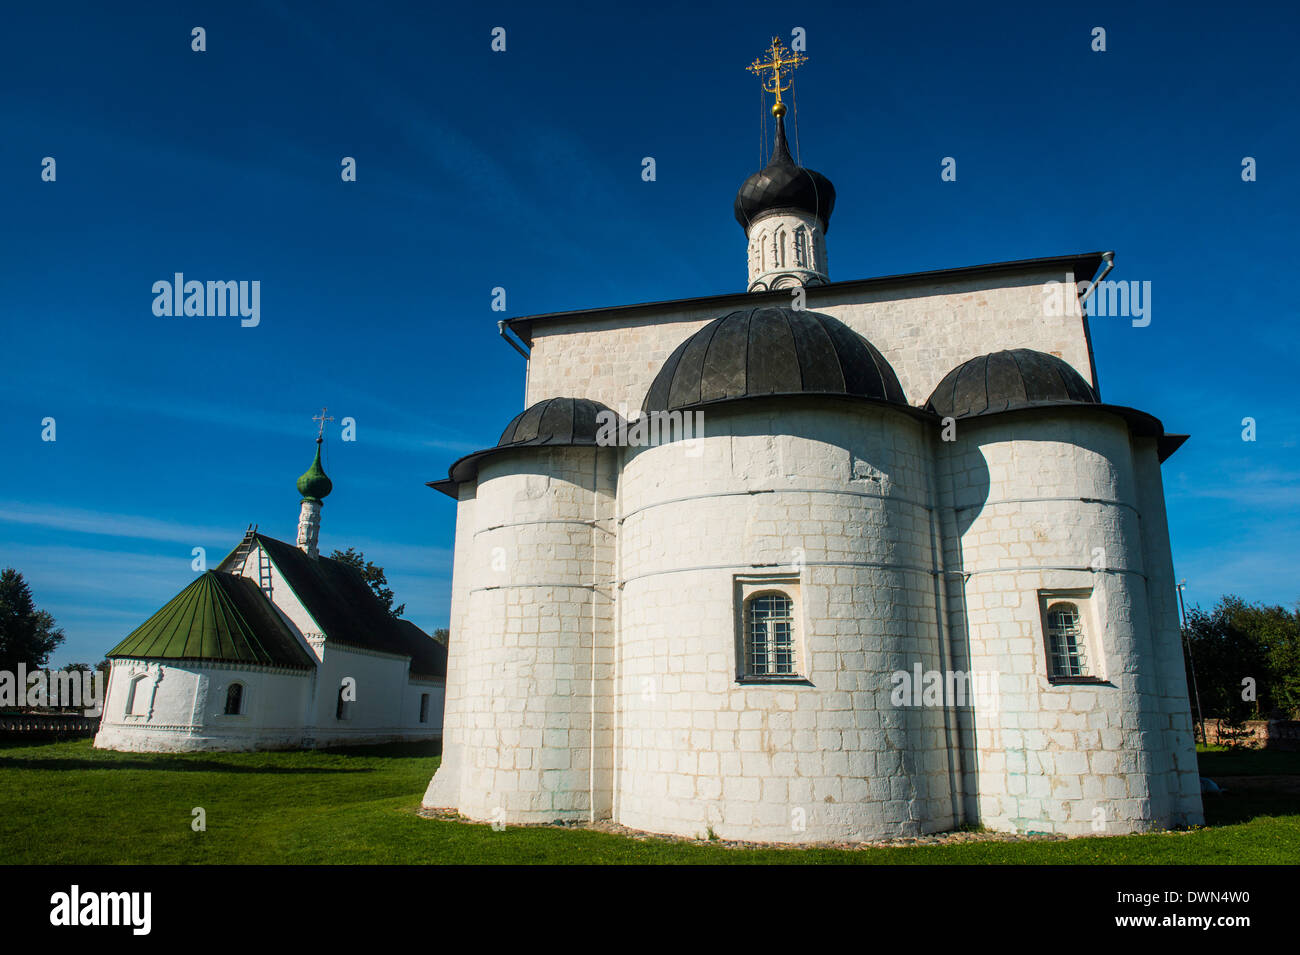 Church of Boris and Gleb in Kidesha (Kideksha), UNESCO World Heritage Site, near Suzdal, Golden Ring, Russia, Europe - Stock Image